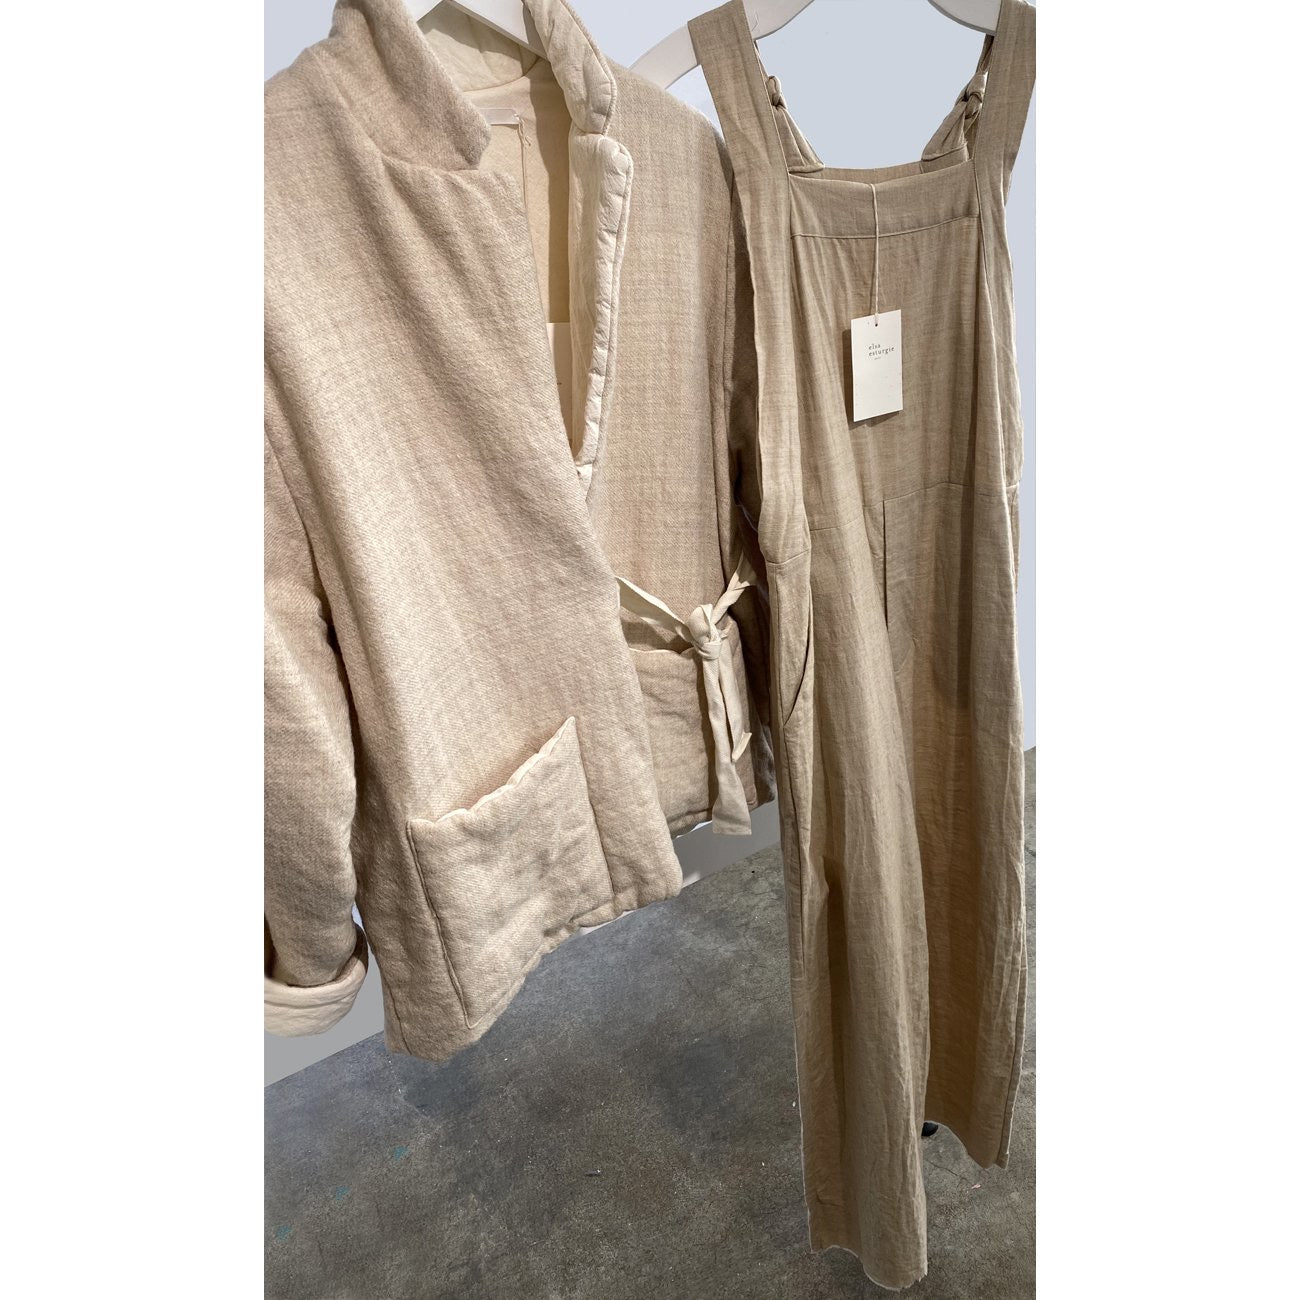 désguisé jacket in beige